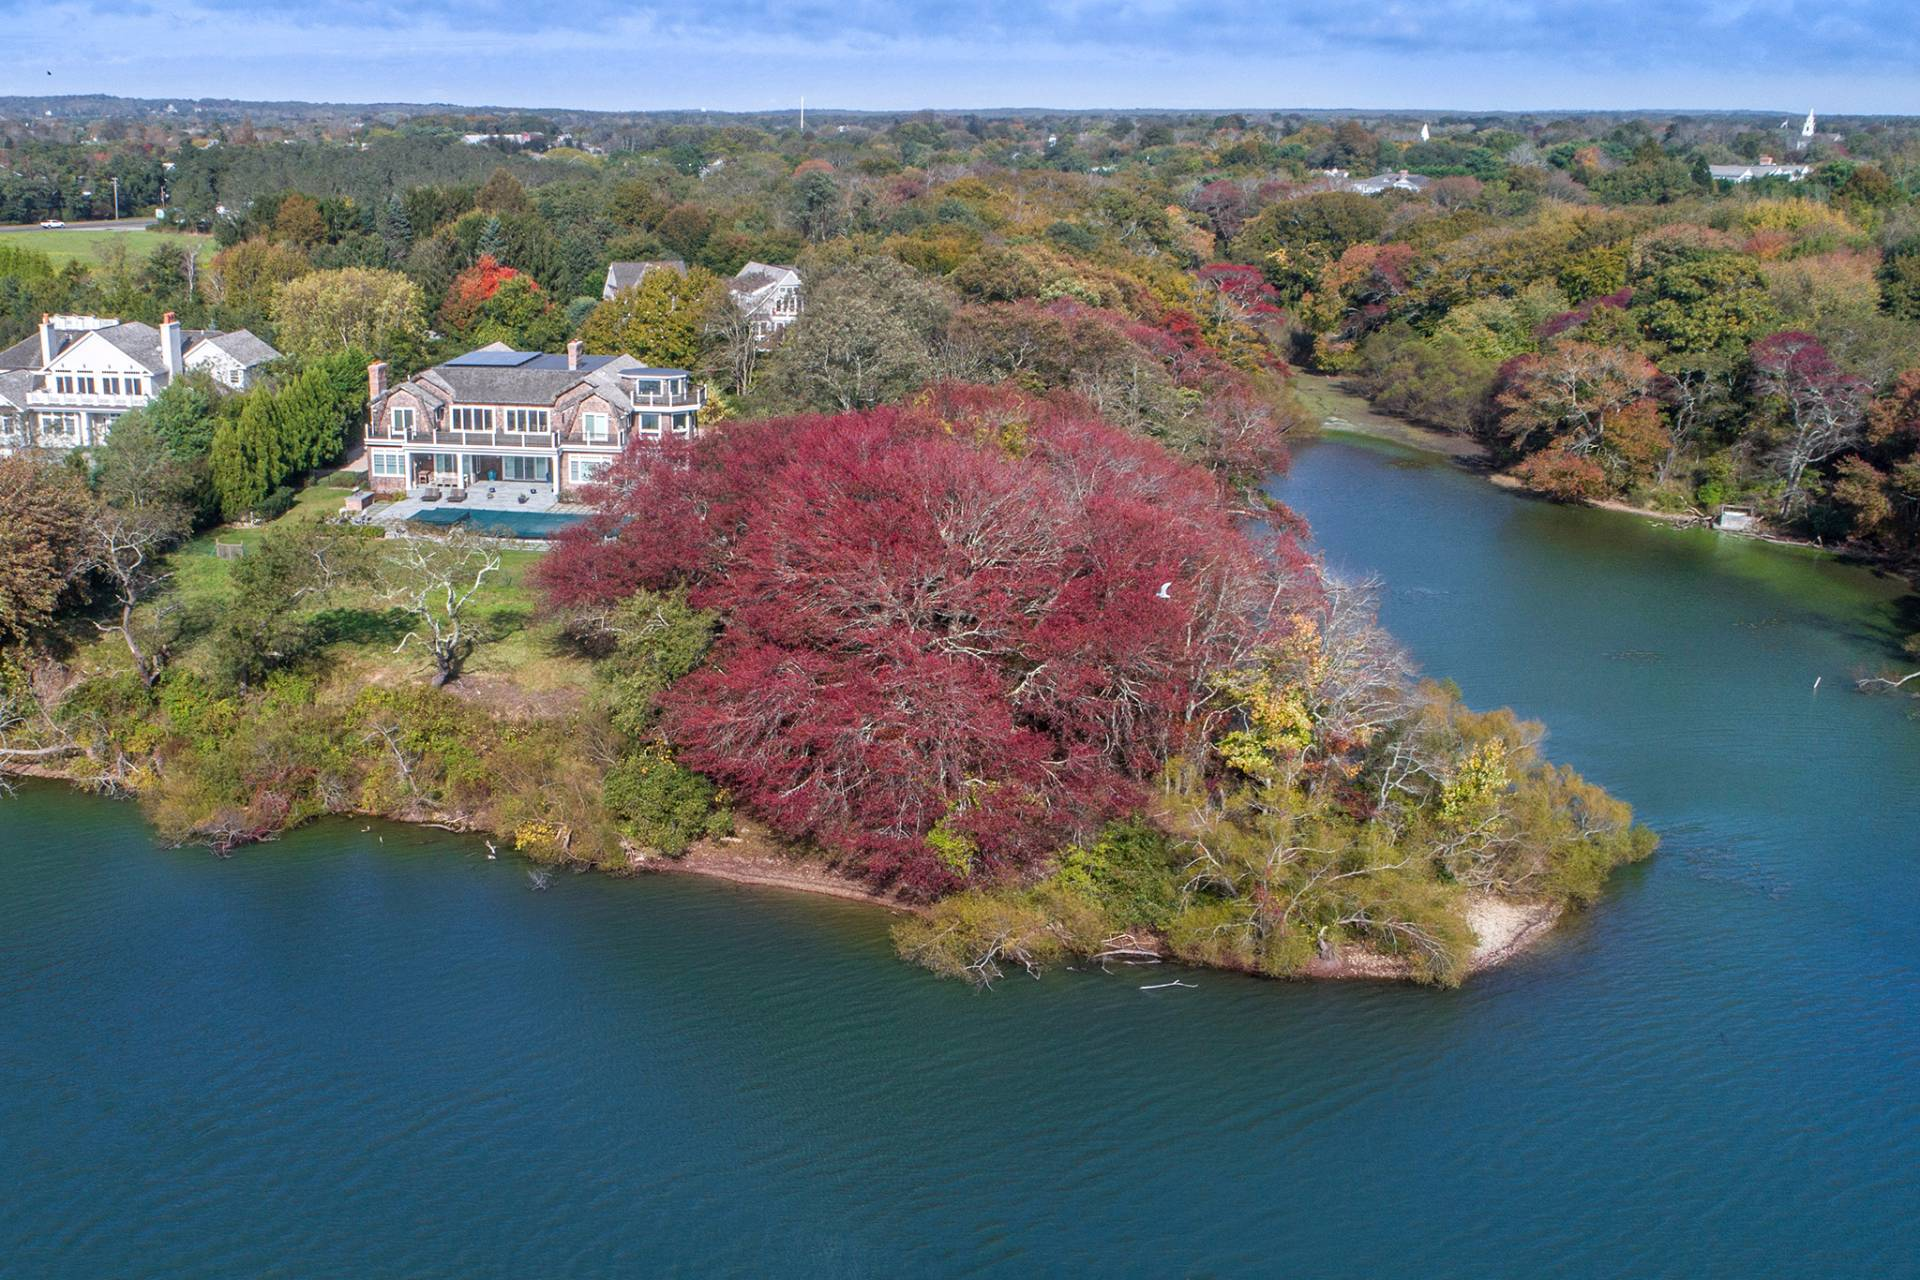 Single Family Home for Sale at Magnificent Bridgehampton South Waterfront Bridgehampton, New York